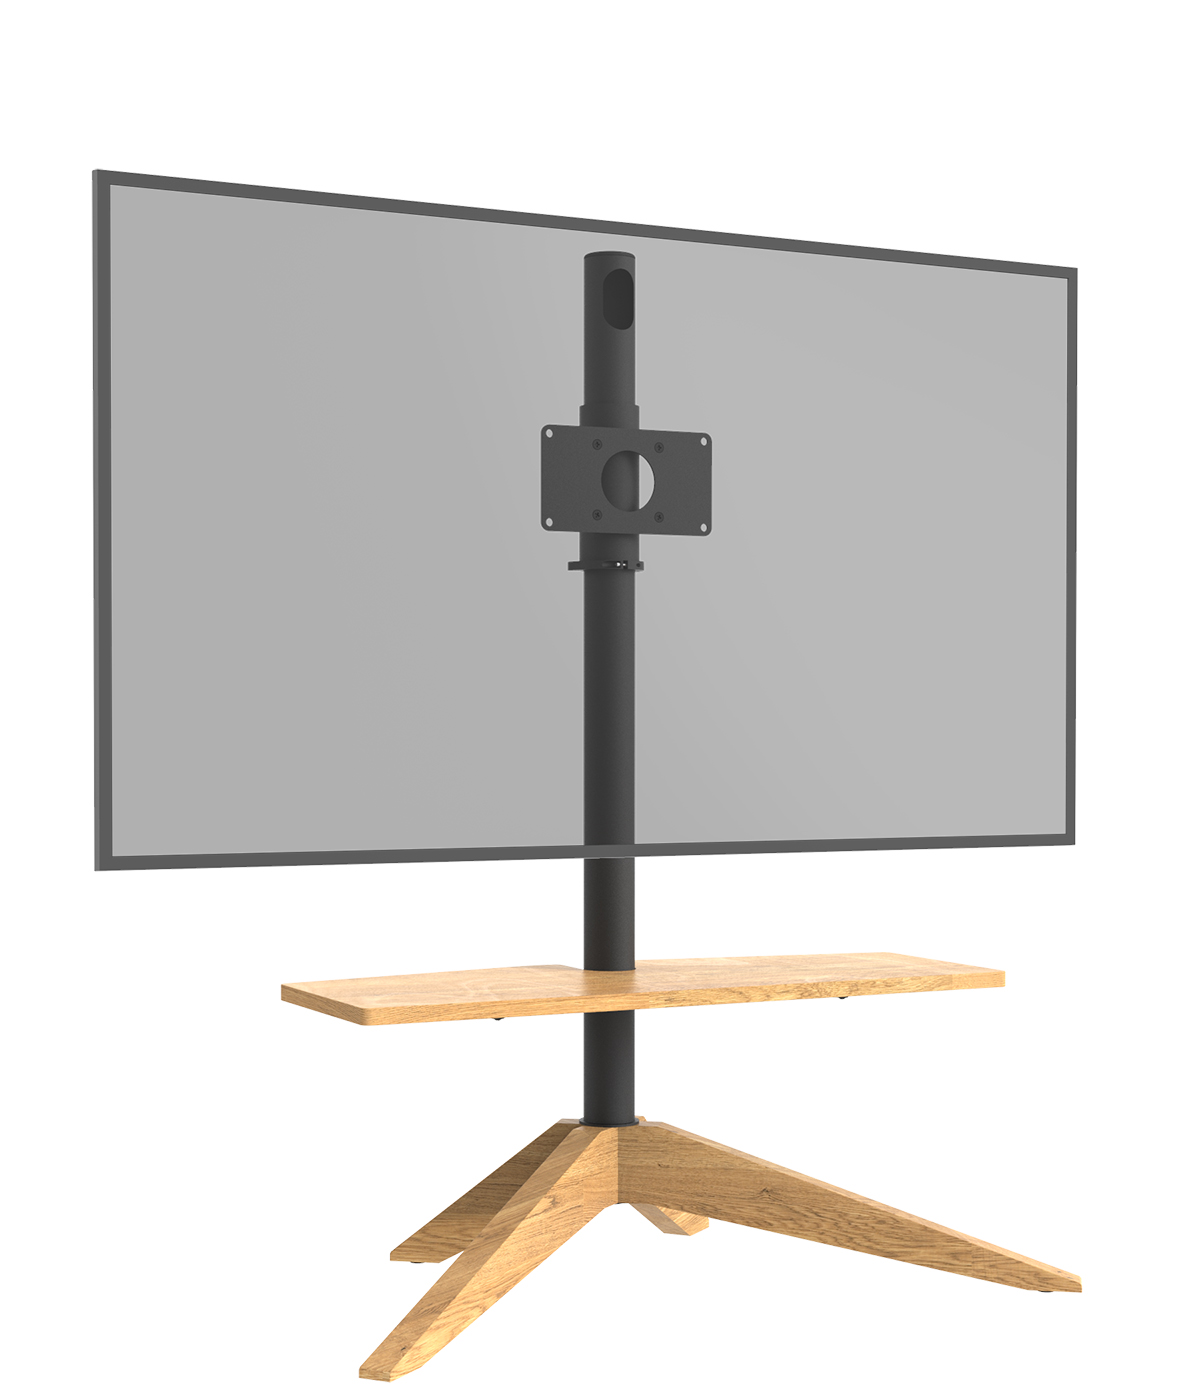 Cavus Tv vloerstandaard Cross Oak VESA 200x100